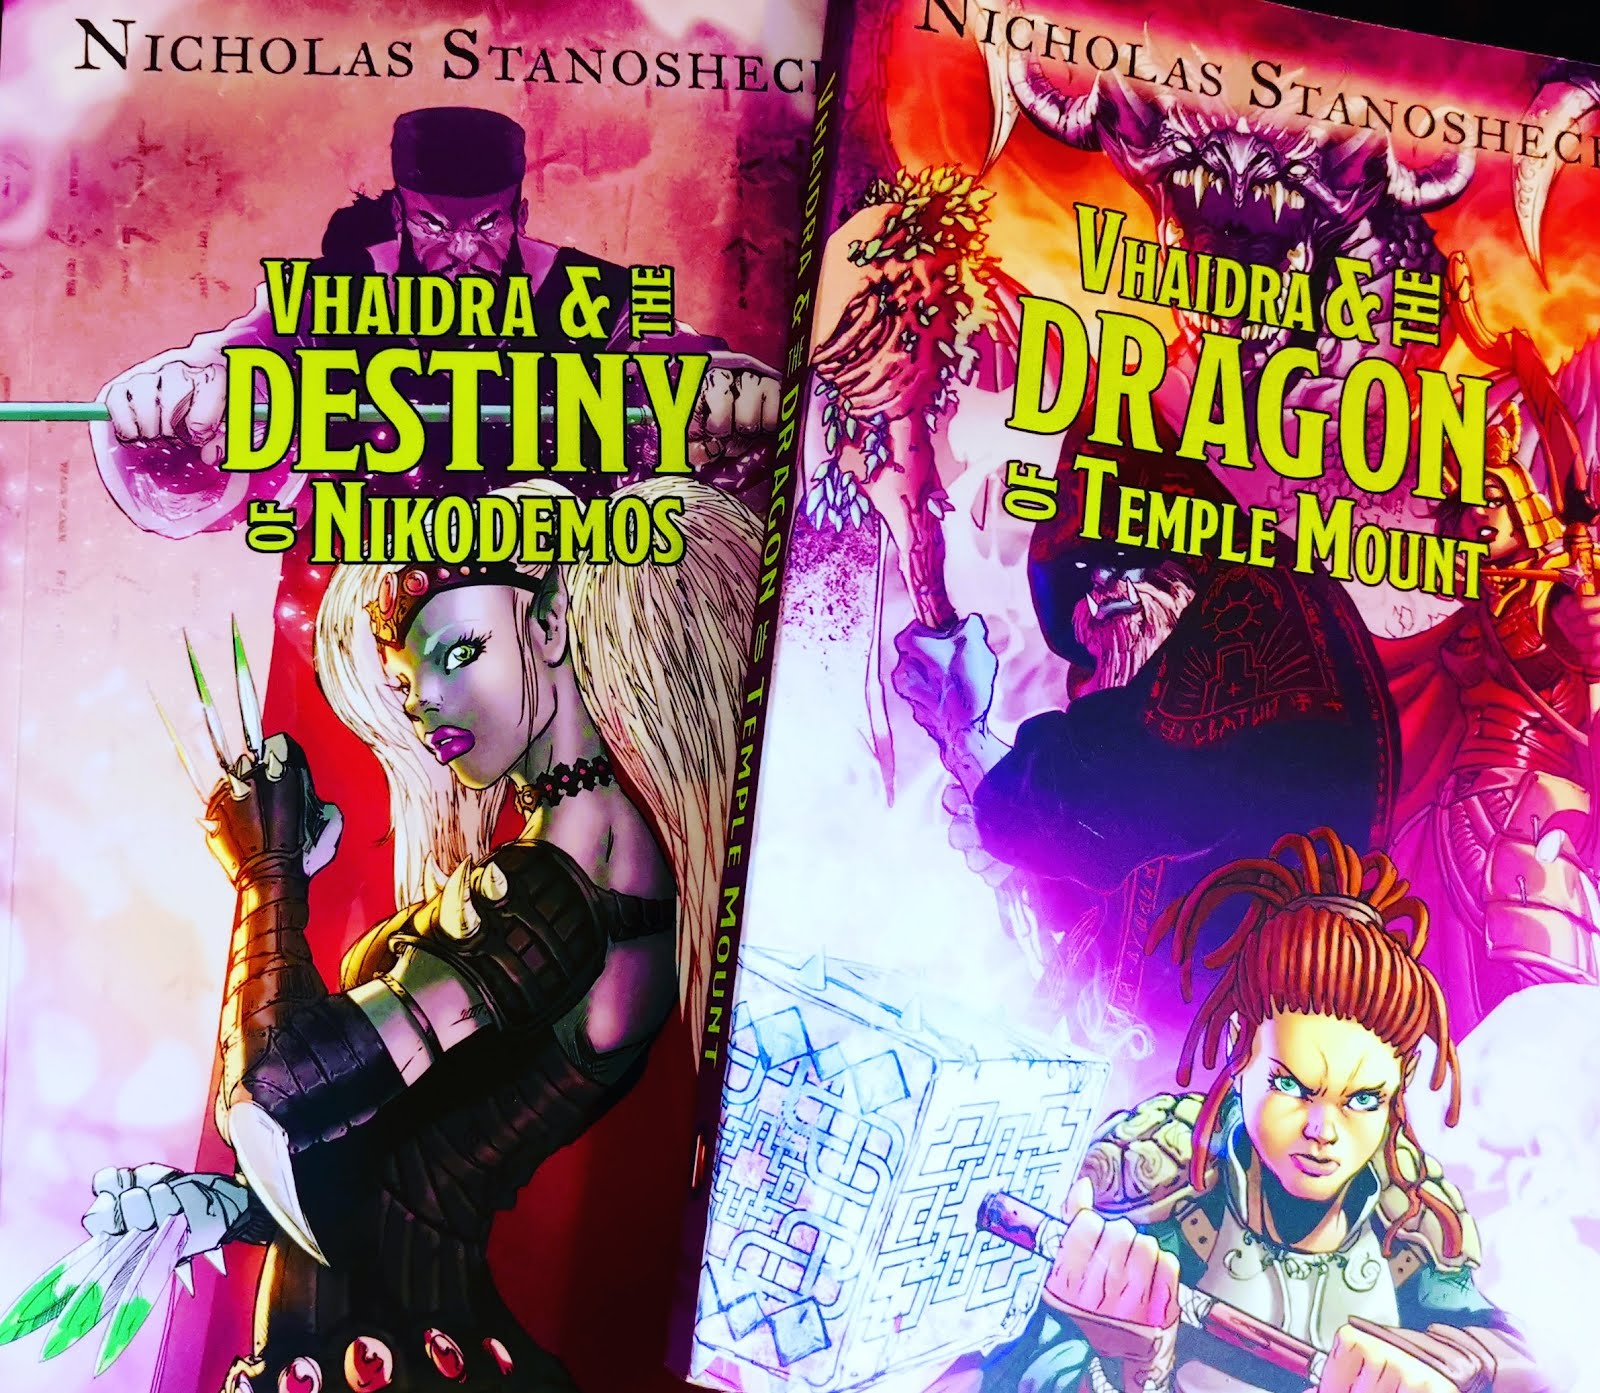 THE VHAIDRA SAGA:  A series of Epic Fantasy / Action & Adventure Novels by Nicholas Stanosheck